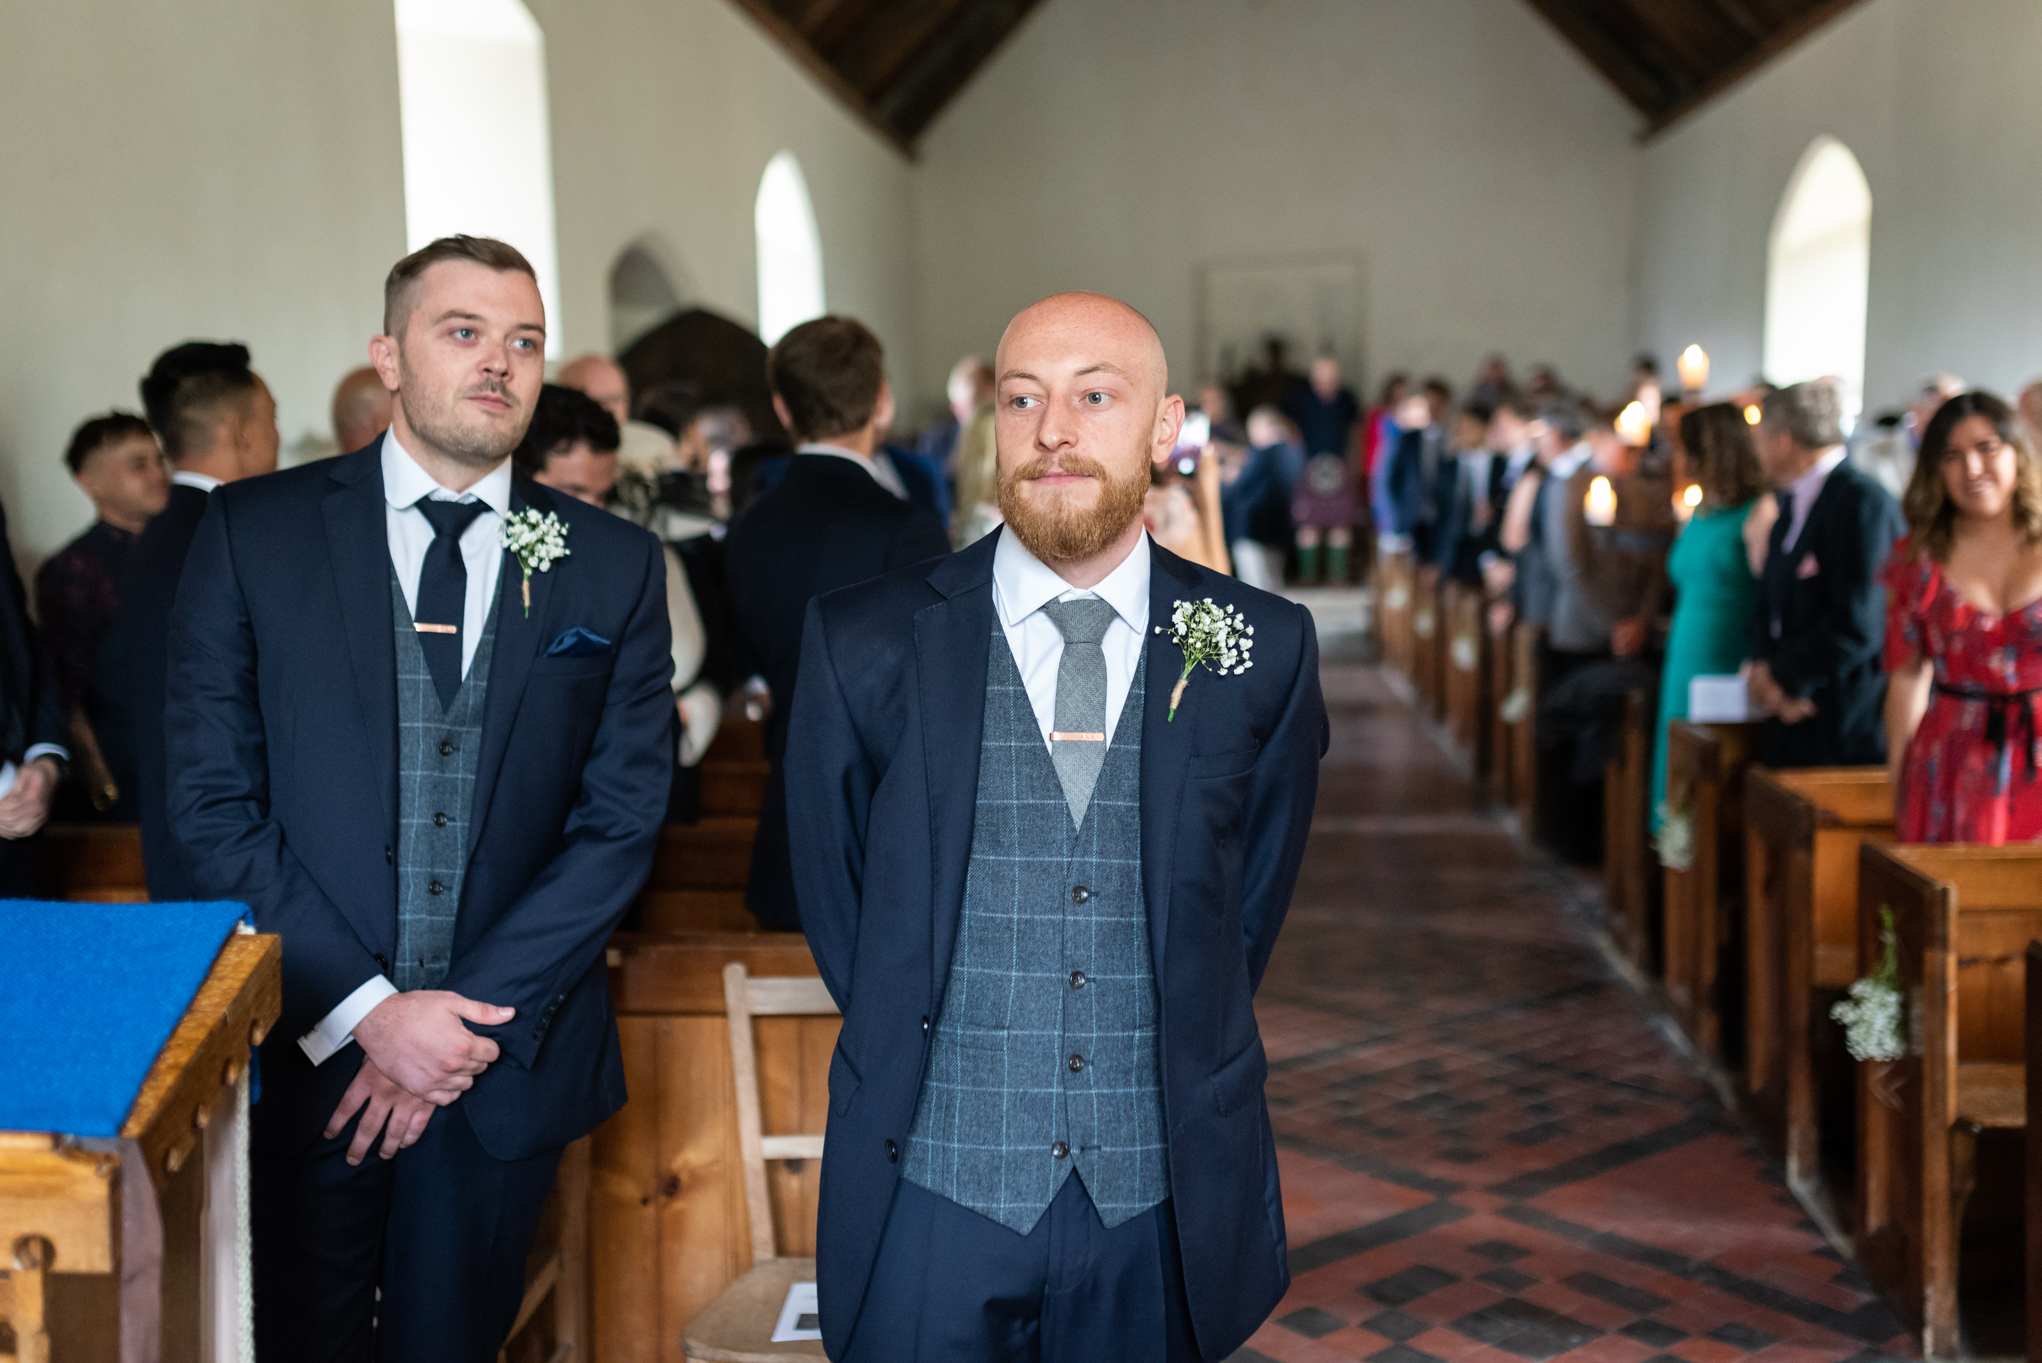 Groom waiting for bride in church - Powys Wedding Photography